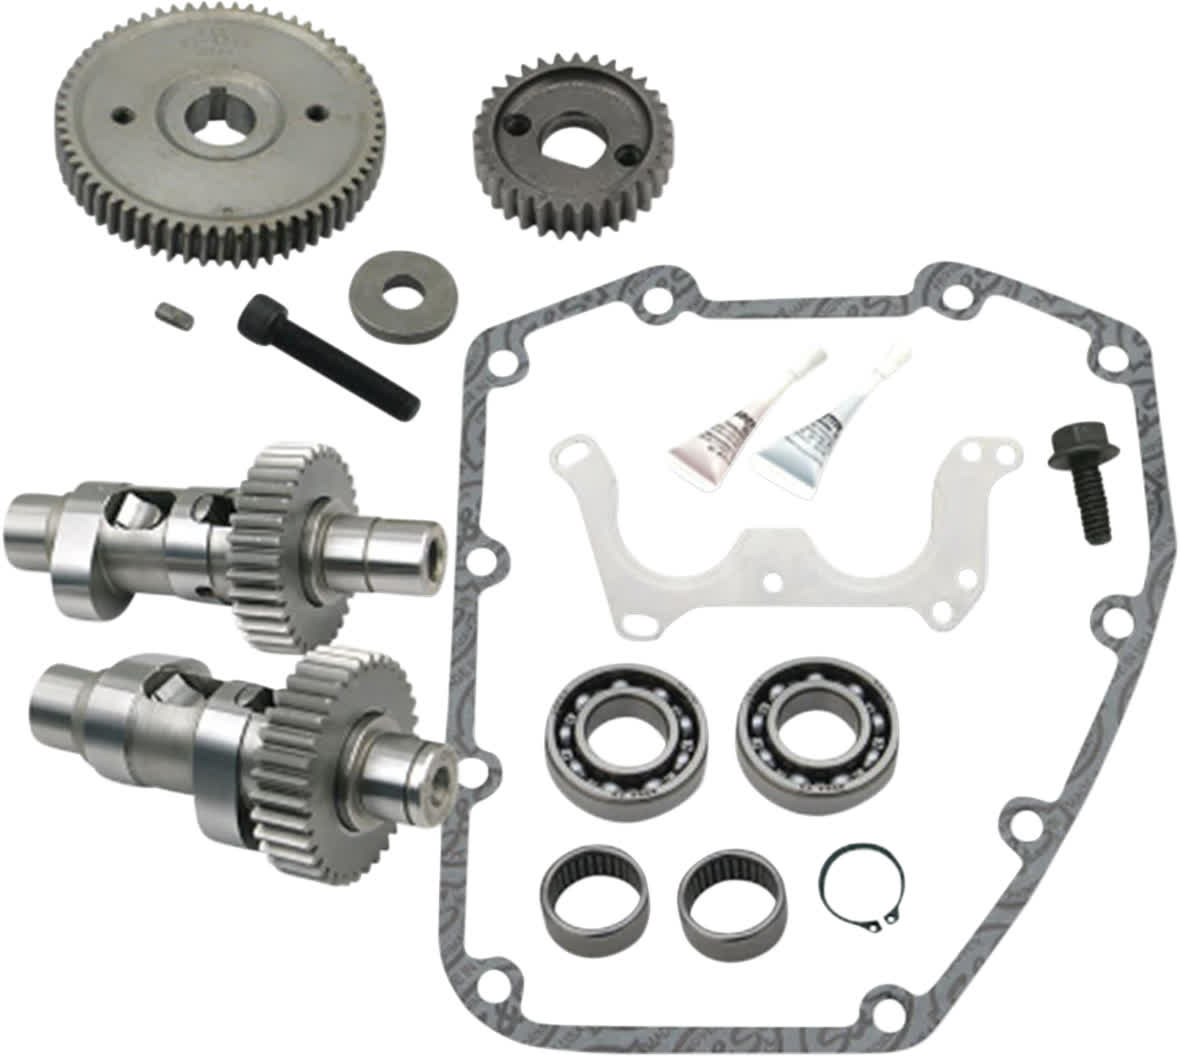 S&S Cycle 330-0339 635 HO Easy Start Gear Drive Camshaft Kit Harley 07-17 TC